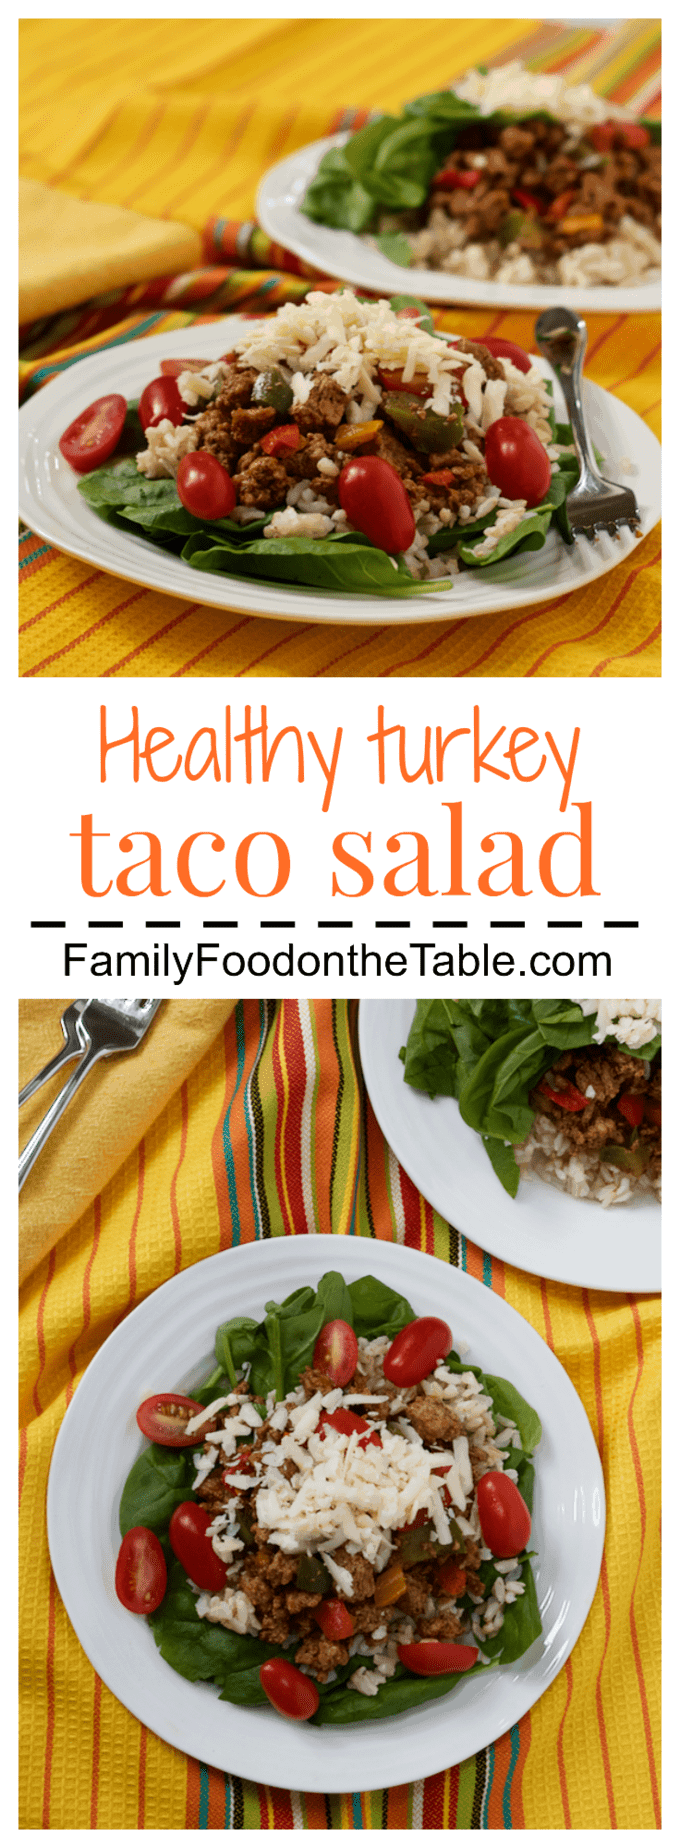 Healthy turkey taco salad - tacos in salad form for a lighter dinner | FamilyFoodontheTable.com